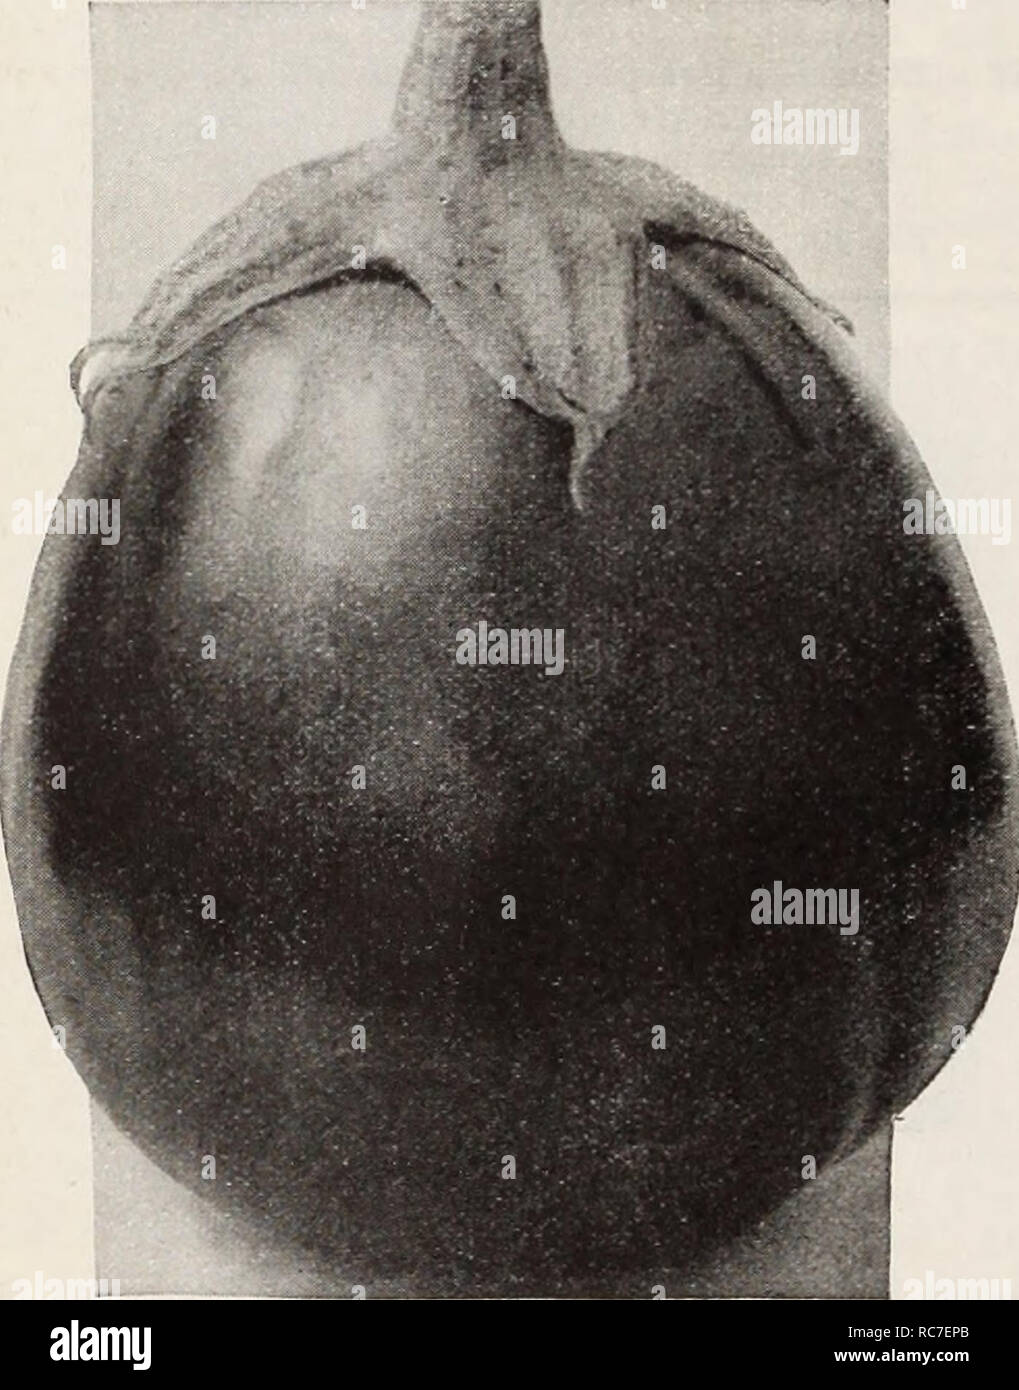 . Dreer's garden book / Henry A. Dreer.. Nursery Catalogue. ^ RELIABLE VEGETABLE SEEM Egg Plant A ubergine, Fr. Berenjena, Sp. Petonciano, Ital. Eierfrucht, Ger. One ounce will produce about 1000 plants. Culture —Egg Plant seed requires a higher temperature for germination than any other vegetable and this temperature should be maintained right along in order to maintain strong and healthy growth. Sow the seed in hotbeds early in March. When 3 inches high, pot the young plants, using small pots, and plunge them in the same bed so that the plants may become stocky. They can be planted out from  Stock Photo